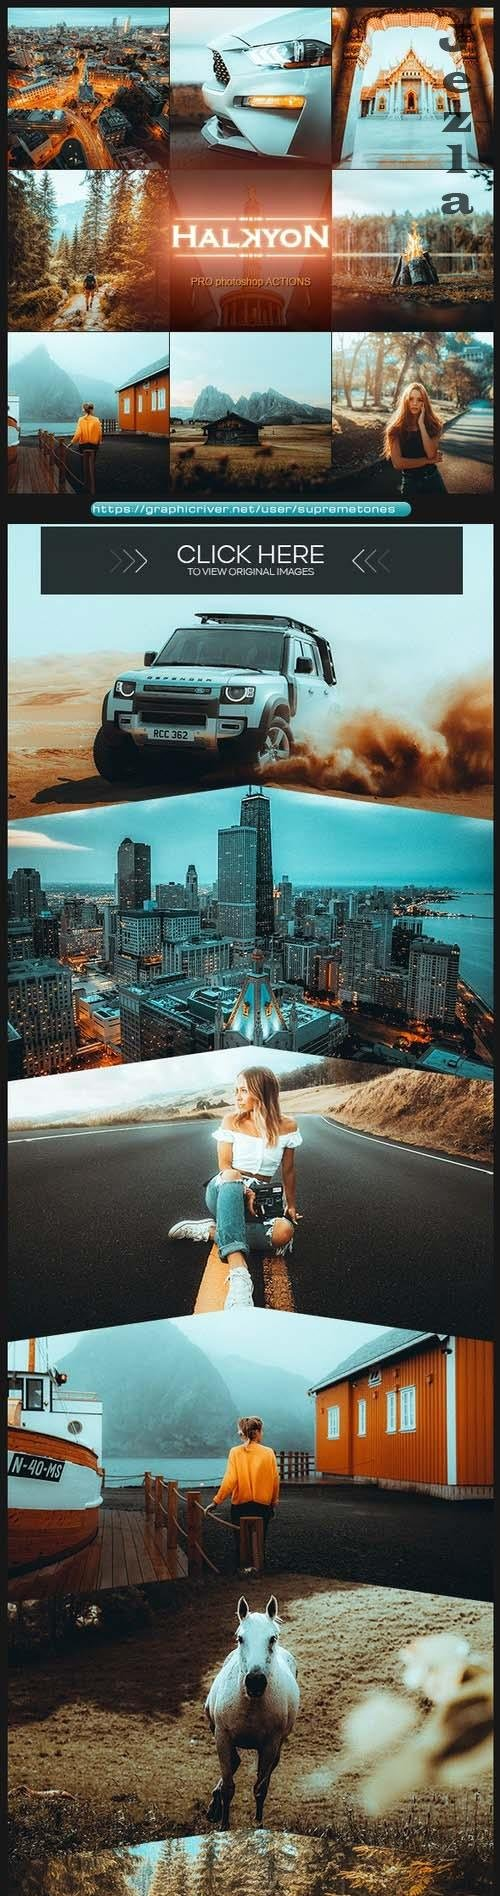 Halkyon Photoshop Actions - 34085491